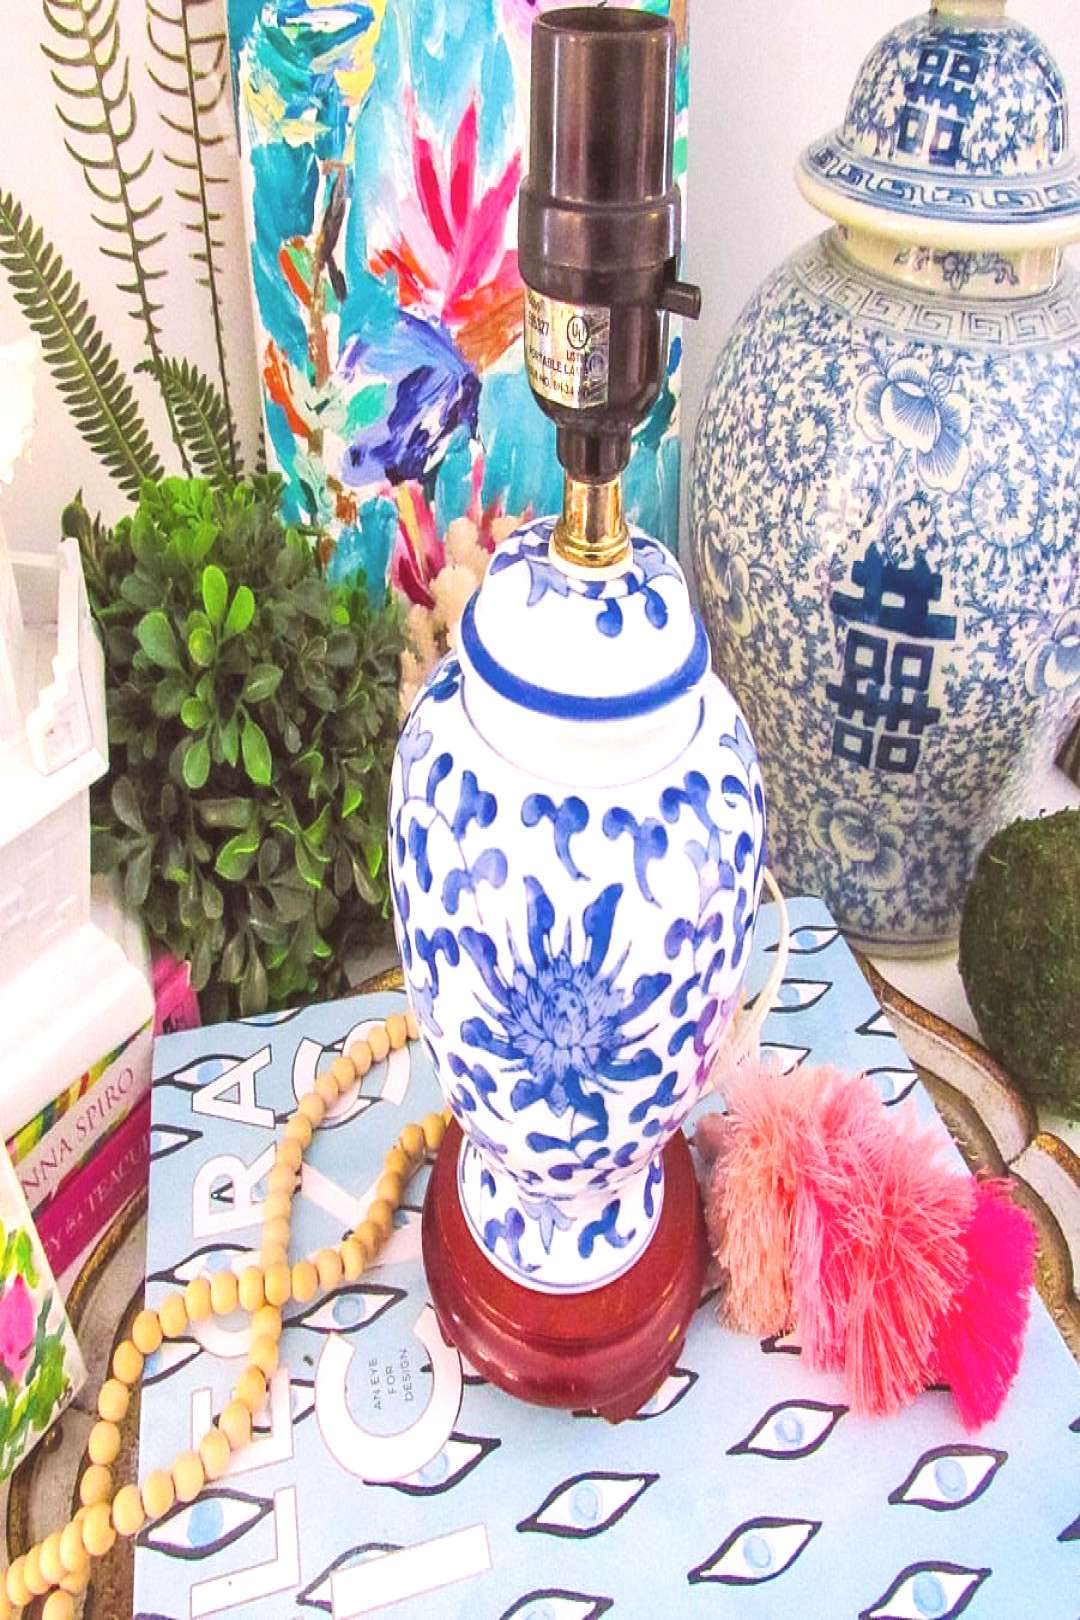 We love a good lamp here at C&C! Especially a cutie patootie blue